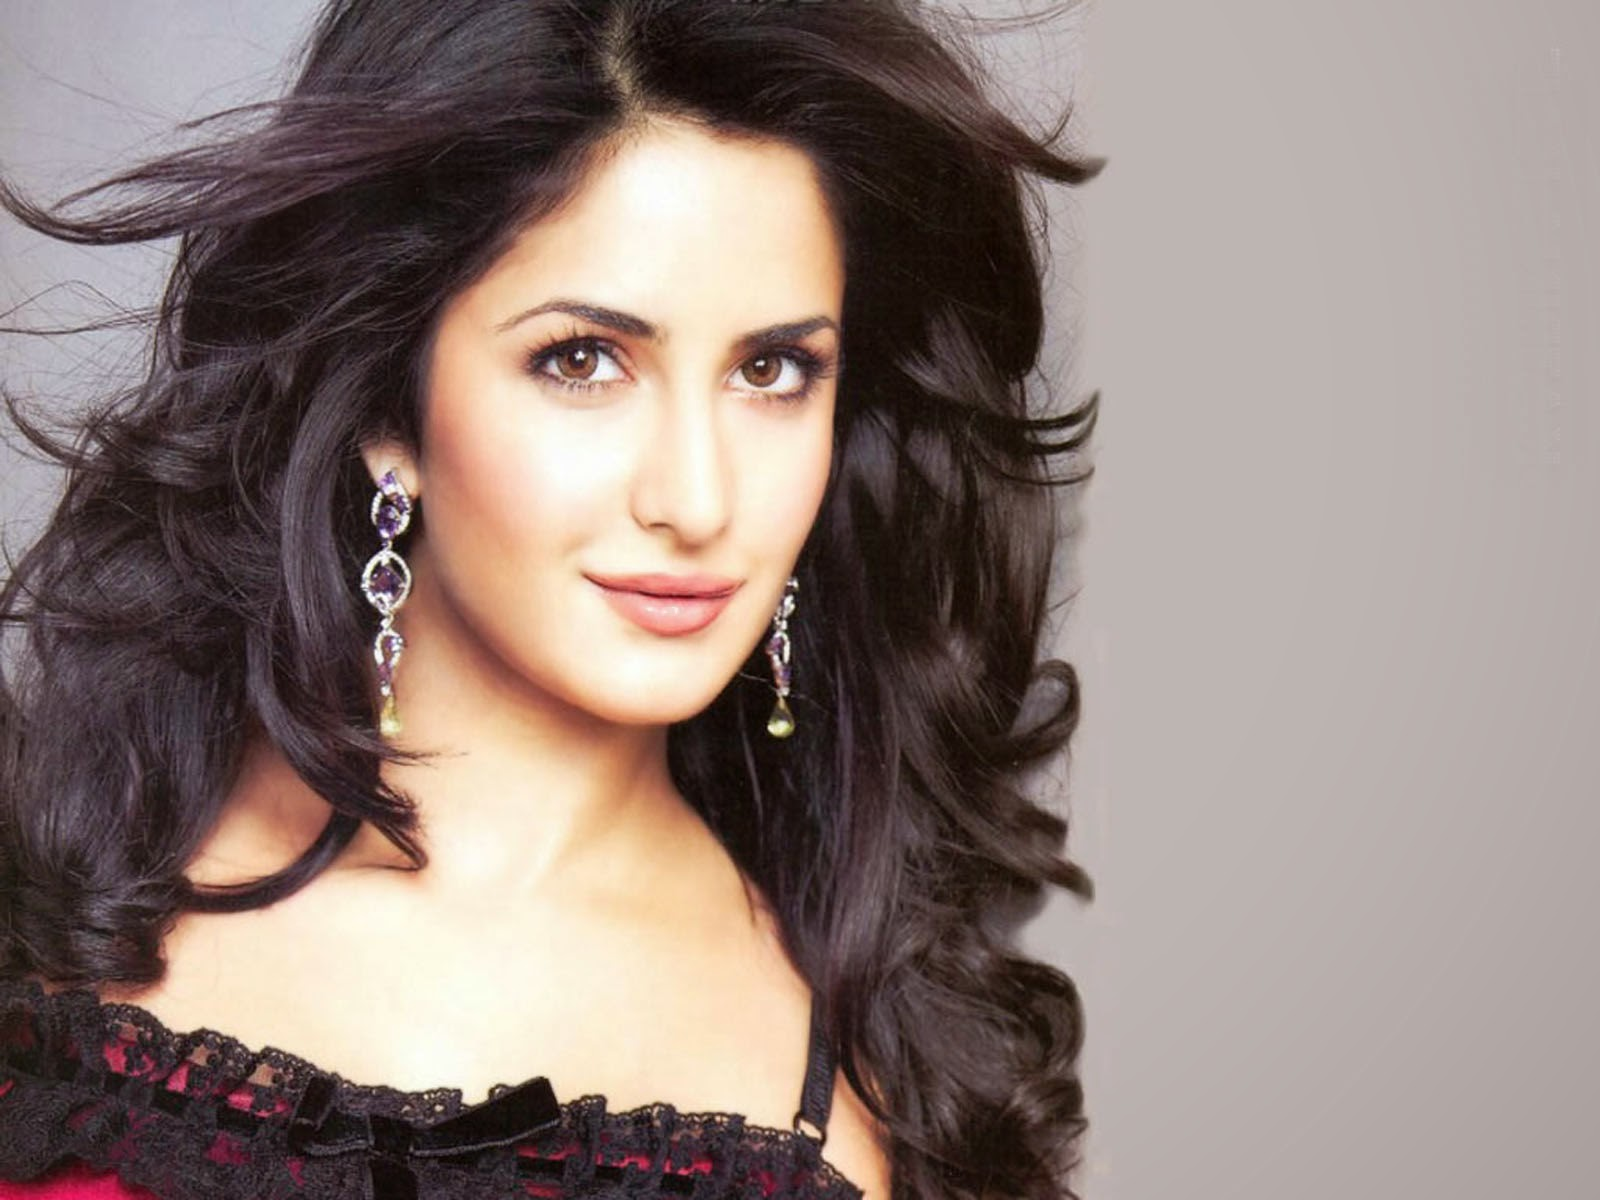 Beautiful katrina kaif photos After recreating Darrs ran moment, Shah Rukh